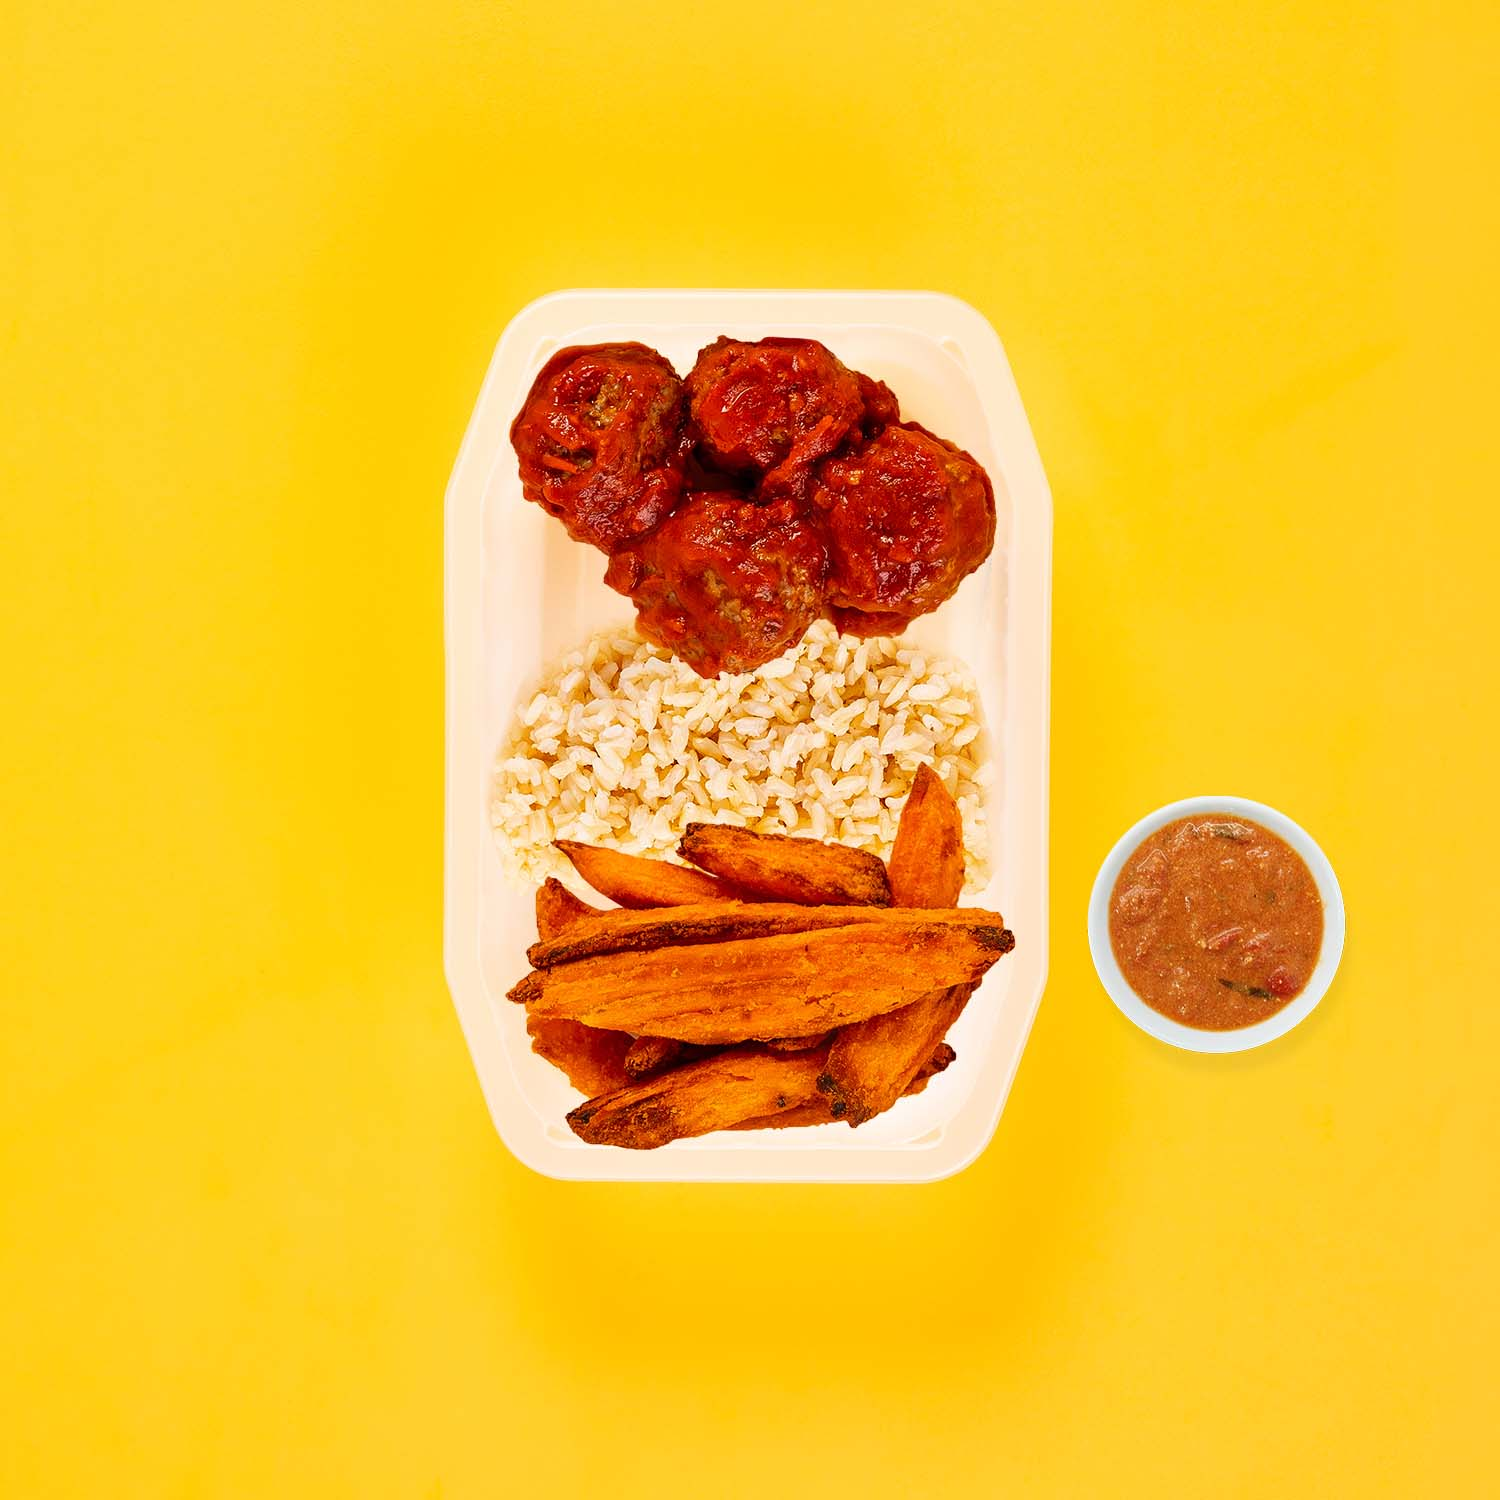 100g Beef Meatballs 100g Brown Rice 150g Sweet Potato Wedges Thai Red Curry